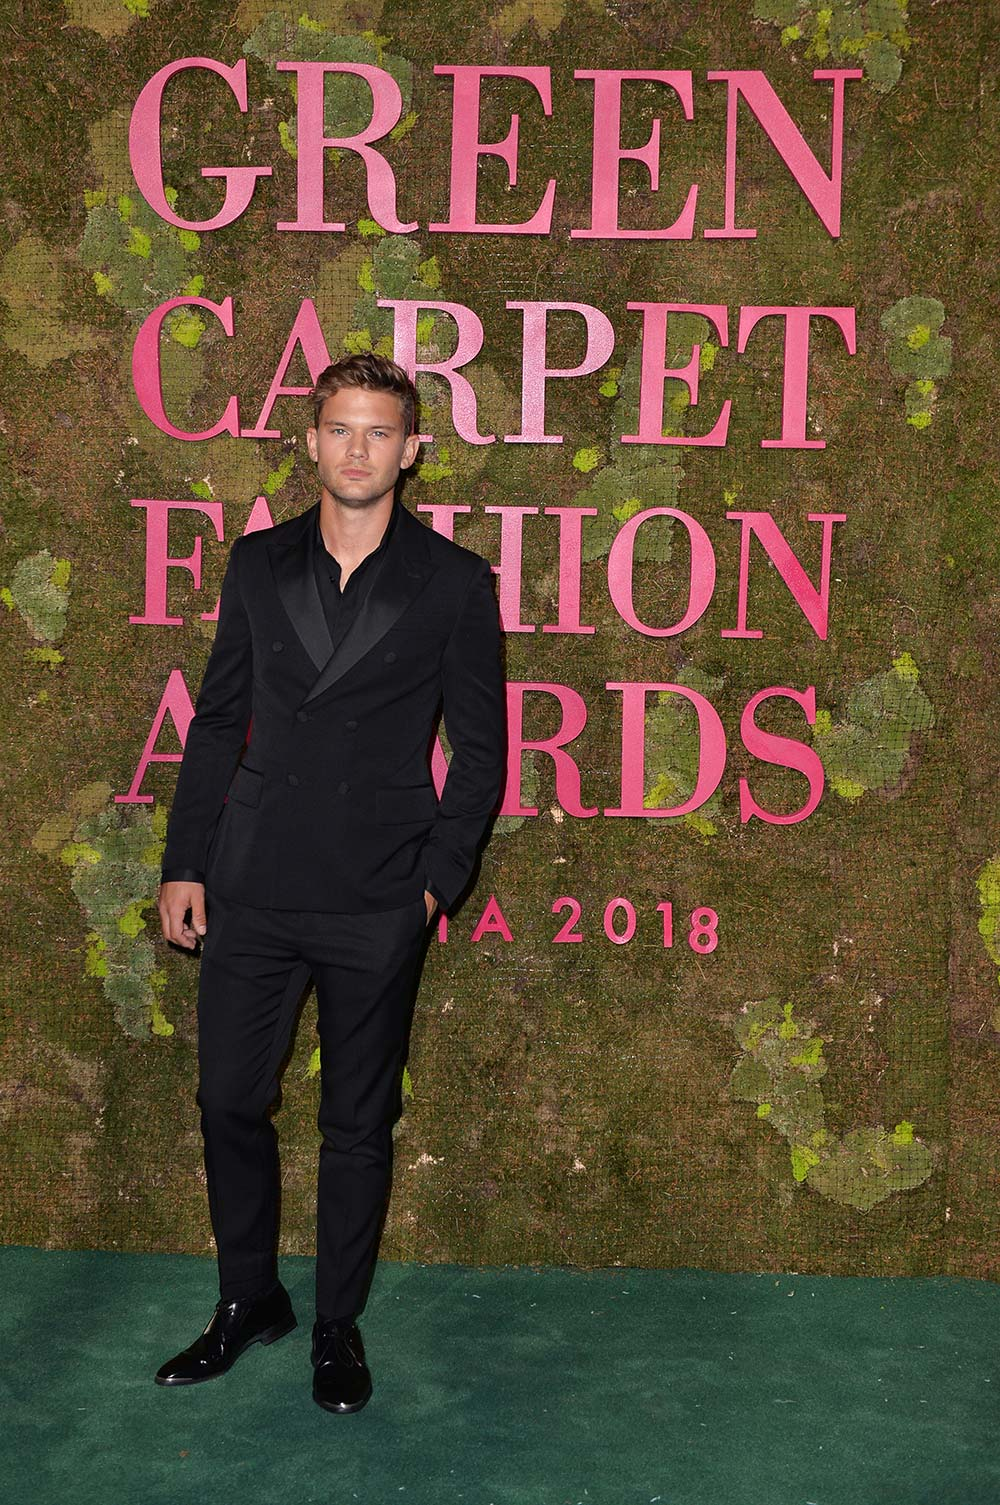 Green Carpet Fashion Awards 2018 - Jeremey Irvine - Grooming Massimo Serini Team